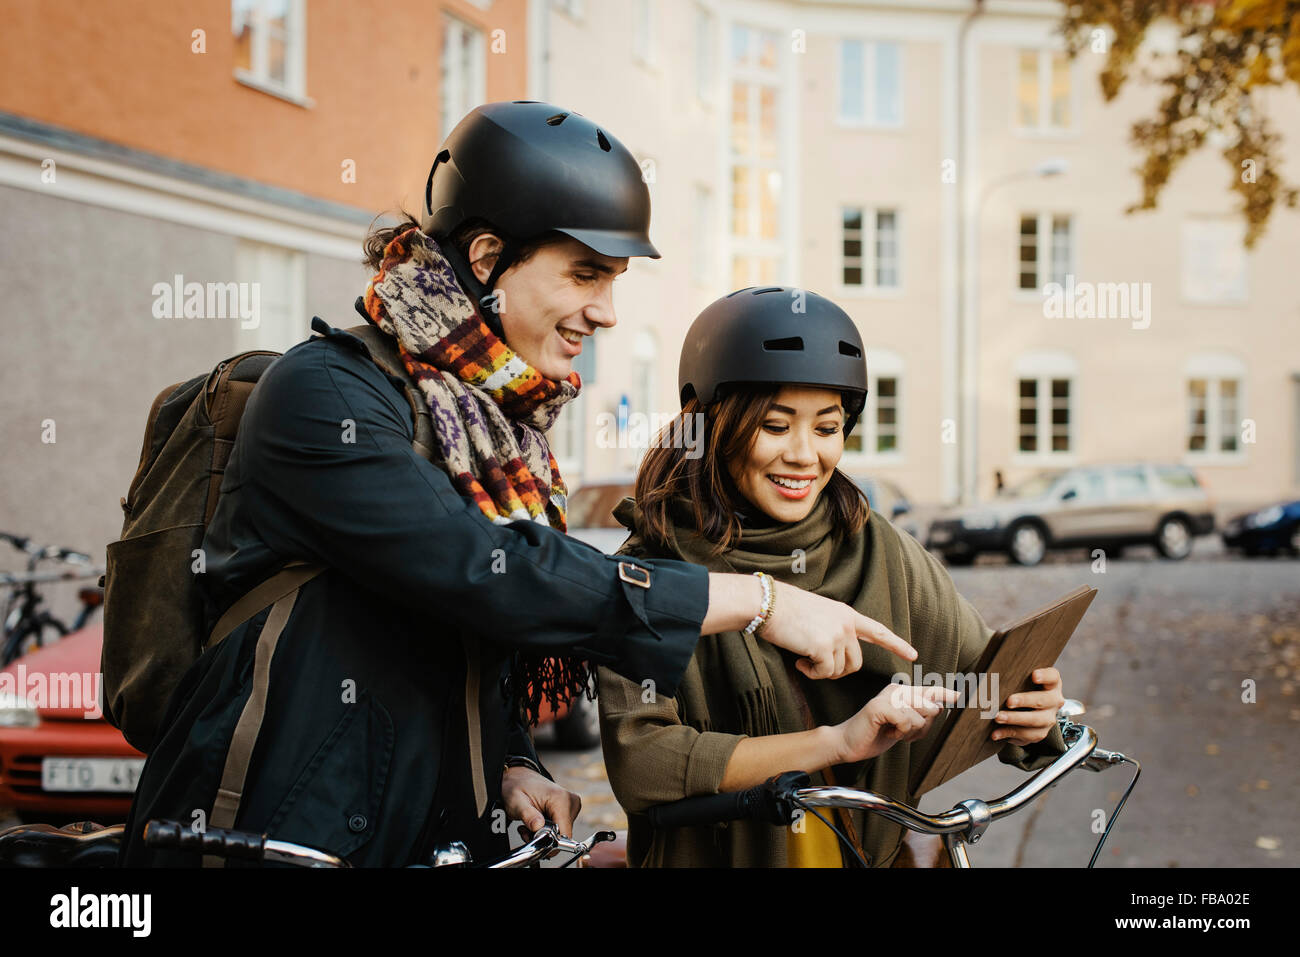 Sweden, Uppland, Stockholm, Vasastan, Rodabergsbrinken, Two young people looking at digital tablet smiling - Stock Image